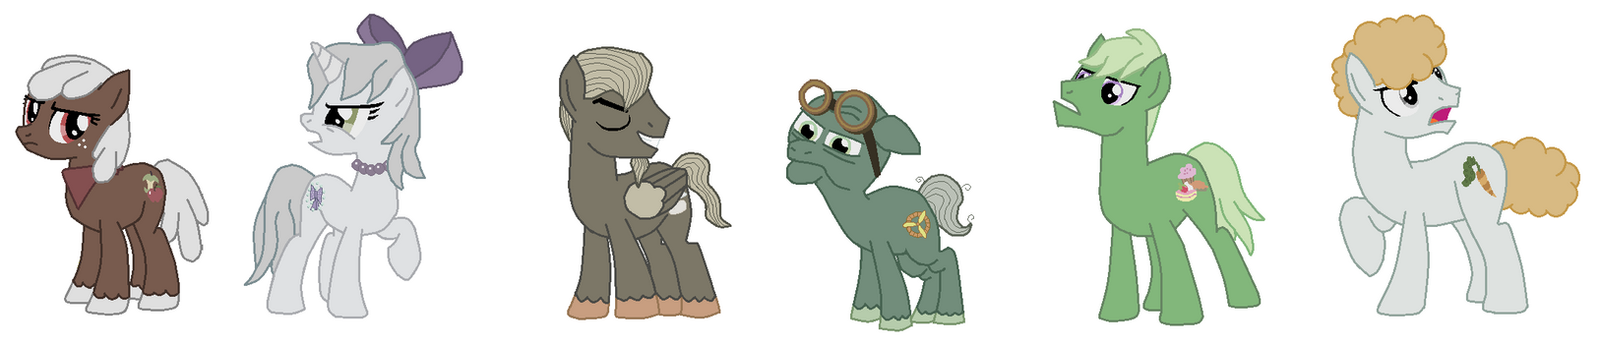 Mane 6 Pets Discorded by FreshlyBaked2014 on DeviantArt